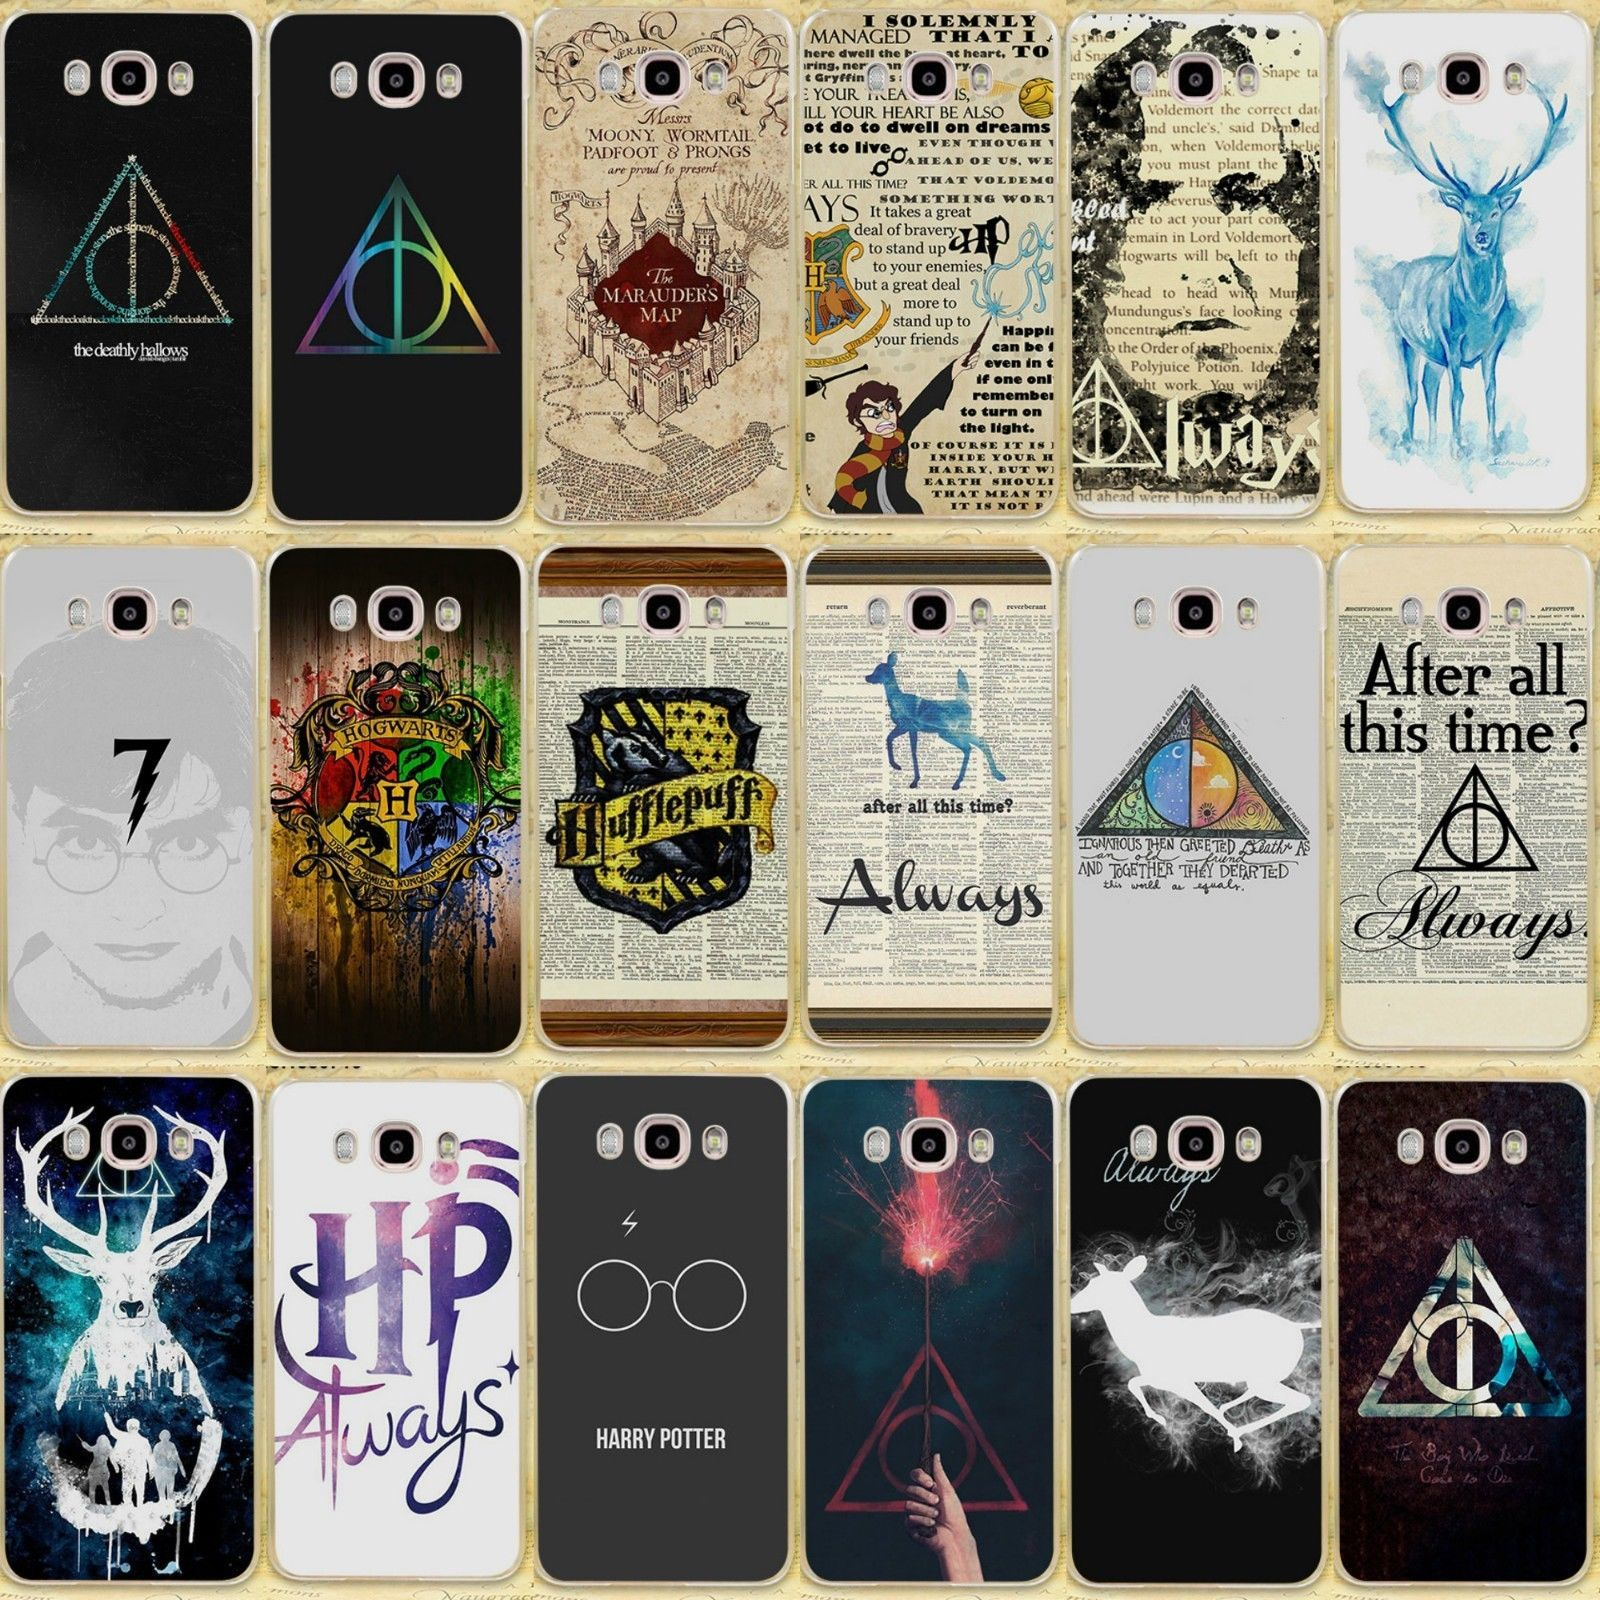 Harry Potter After All This Time Always Case Cover For Samsung Galaxy J Series Harry Potter Phone Harry Potter Phone Case Harry Potter